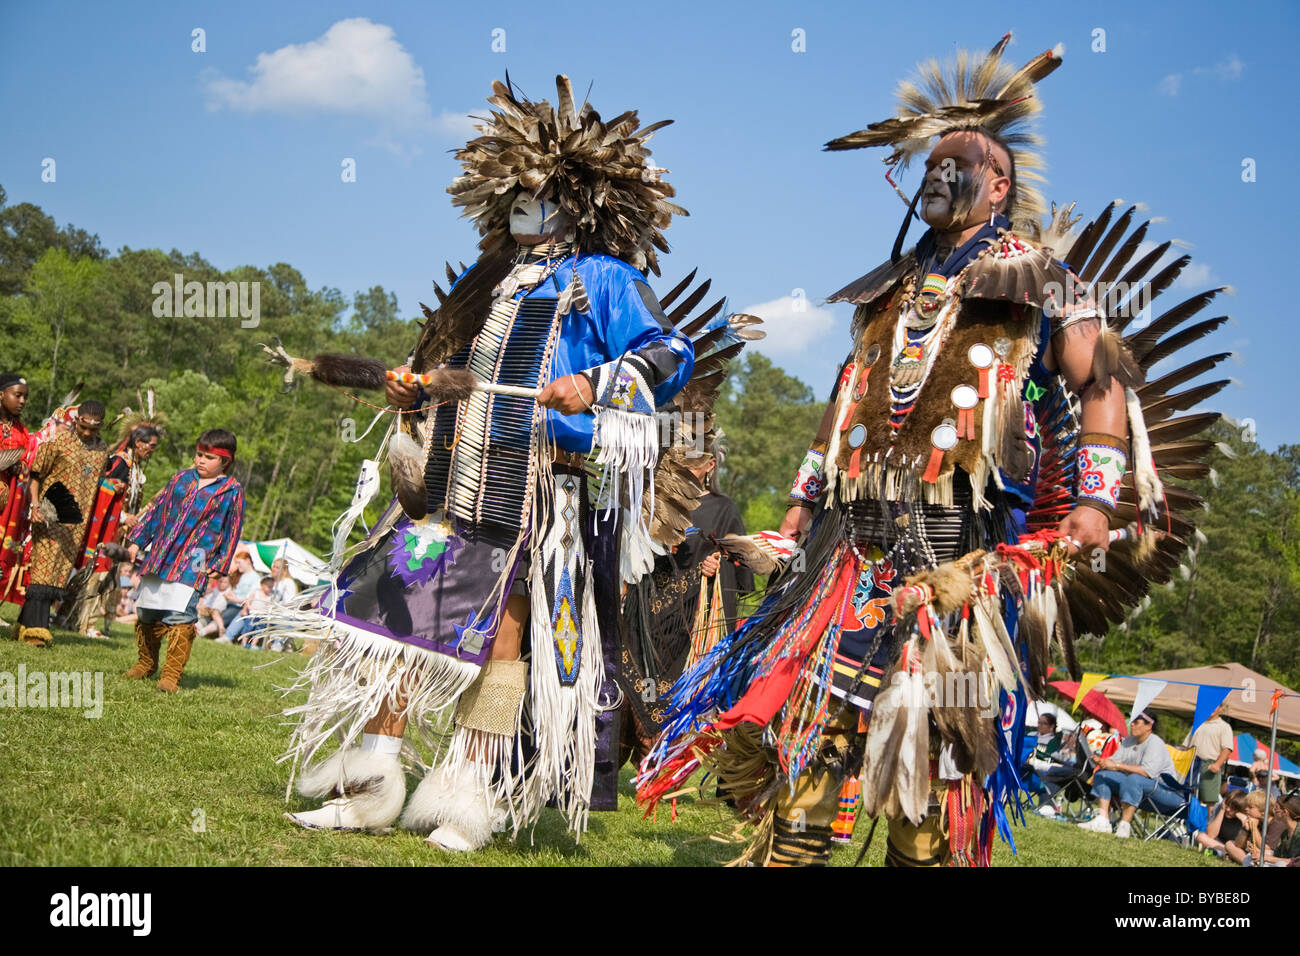 indianer tanz an den 8 j hrlichen red wing powwow in virginia beach virginia stockfoto bild. Black Bedroom Furniture Sets. Home Design Ideas